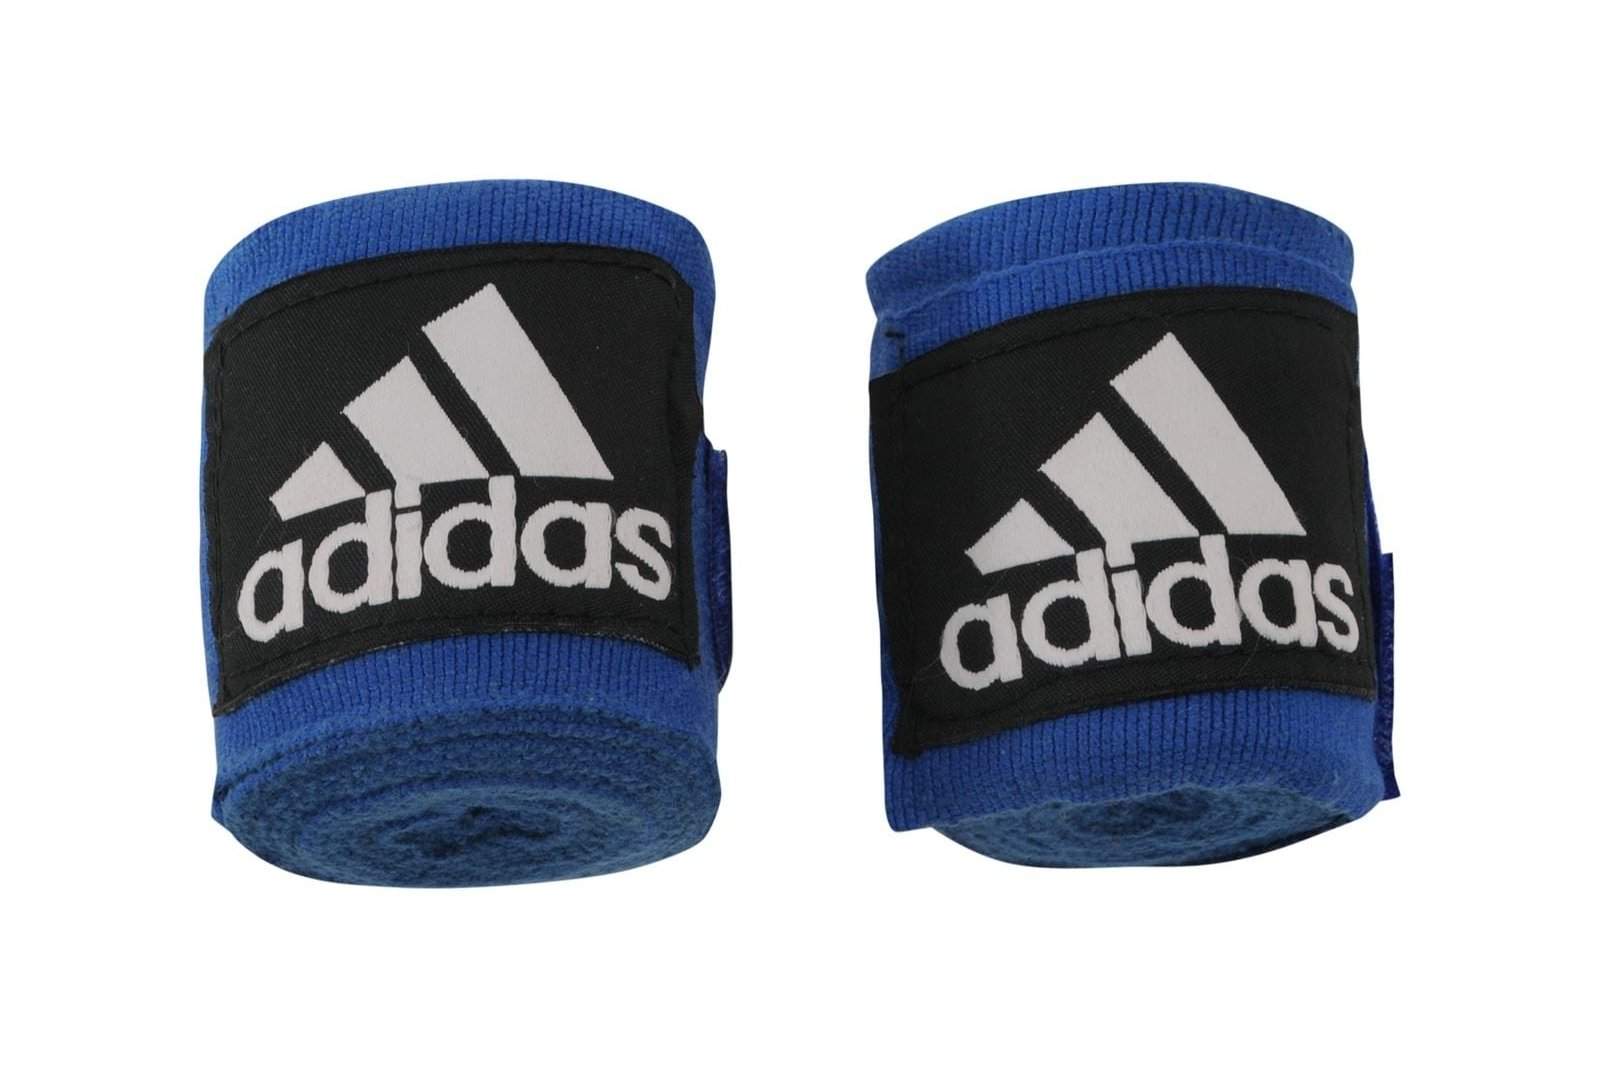 Image of 2 5mm Hand Wraps